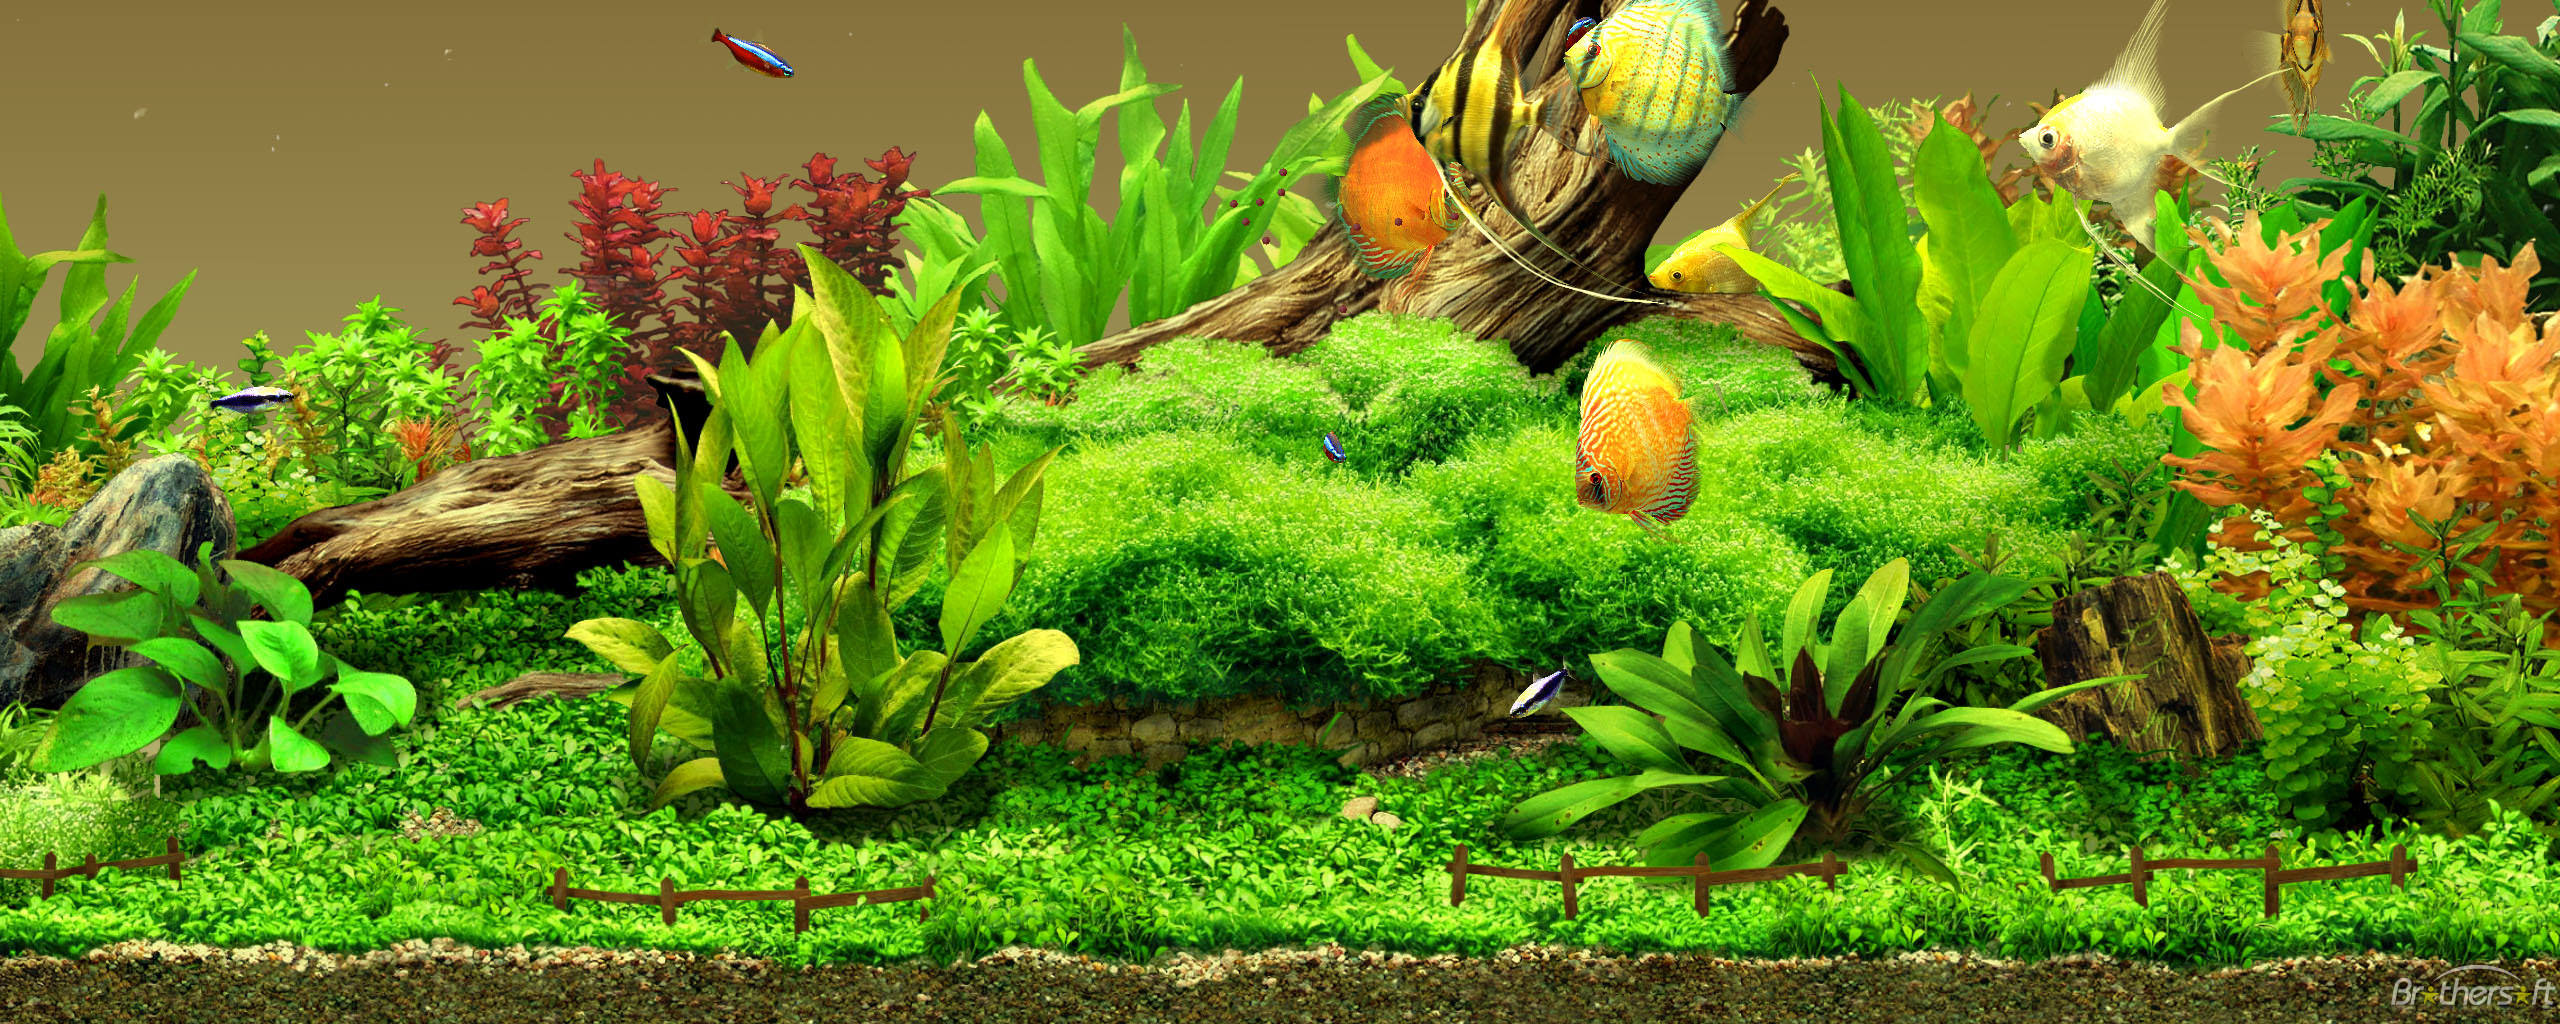 freshwater aquarium background